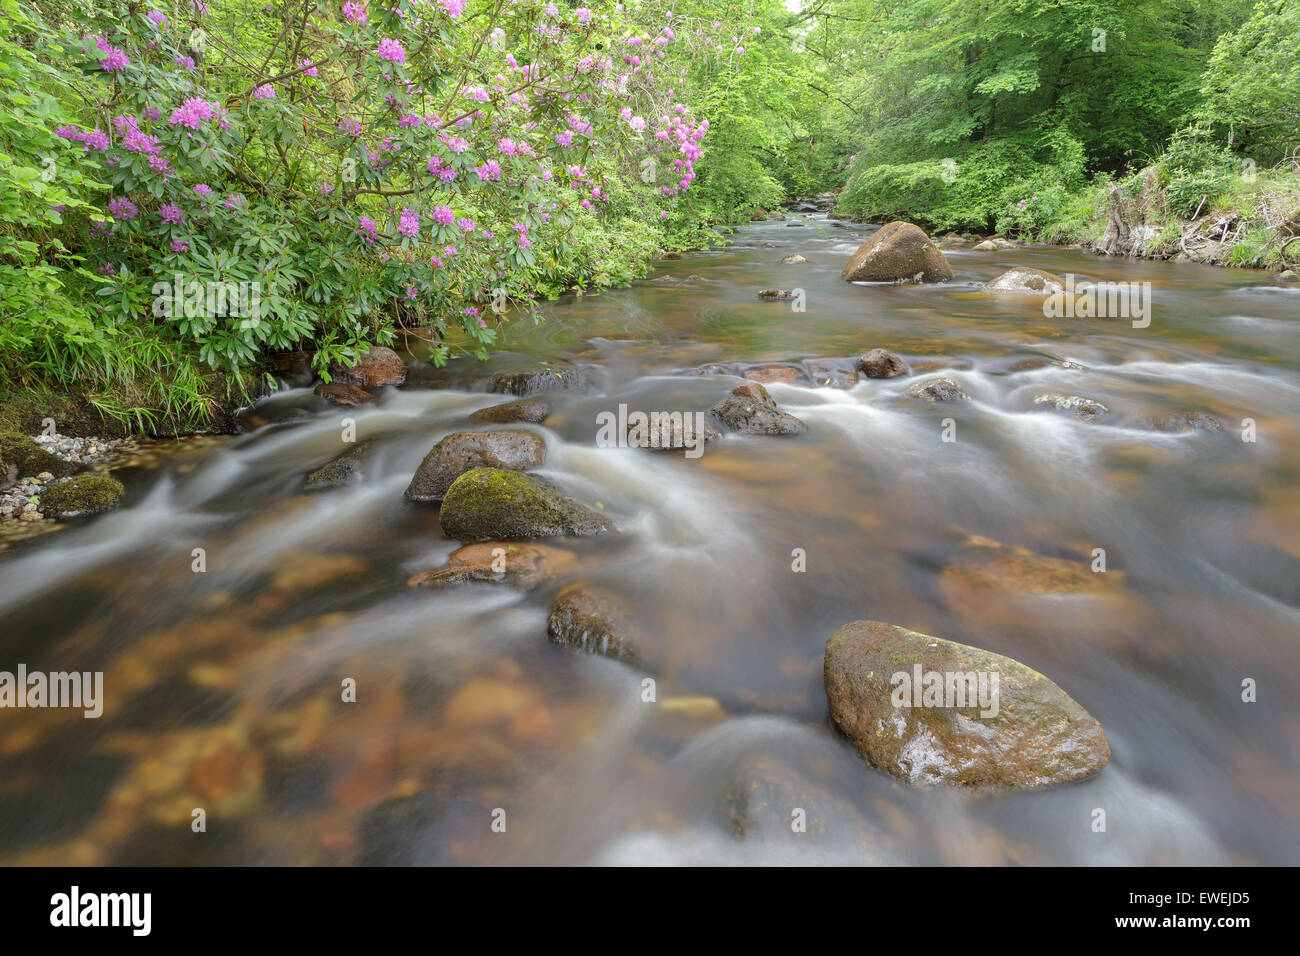 Rhododendrons in bloom on the river Avon. - Stock Image